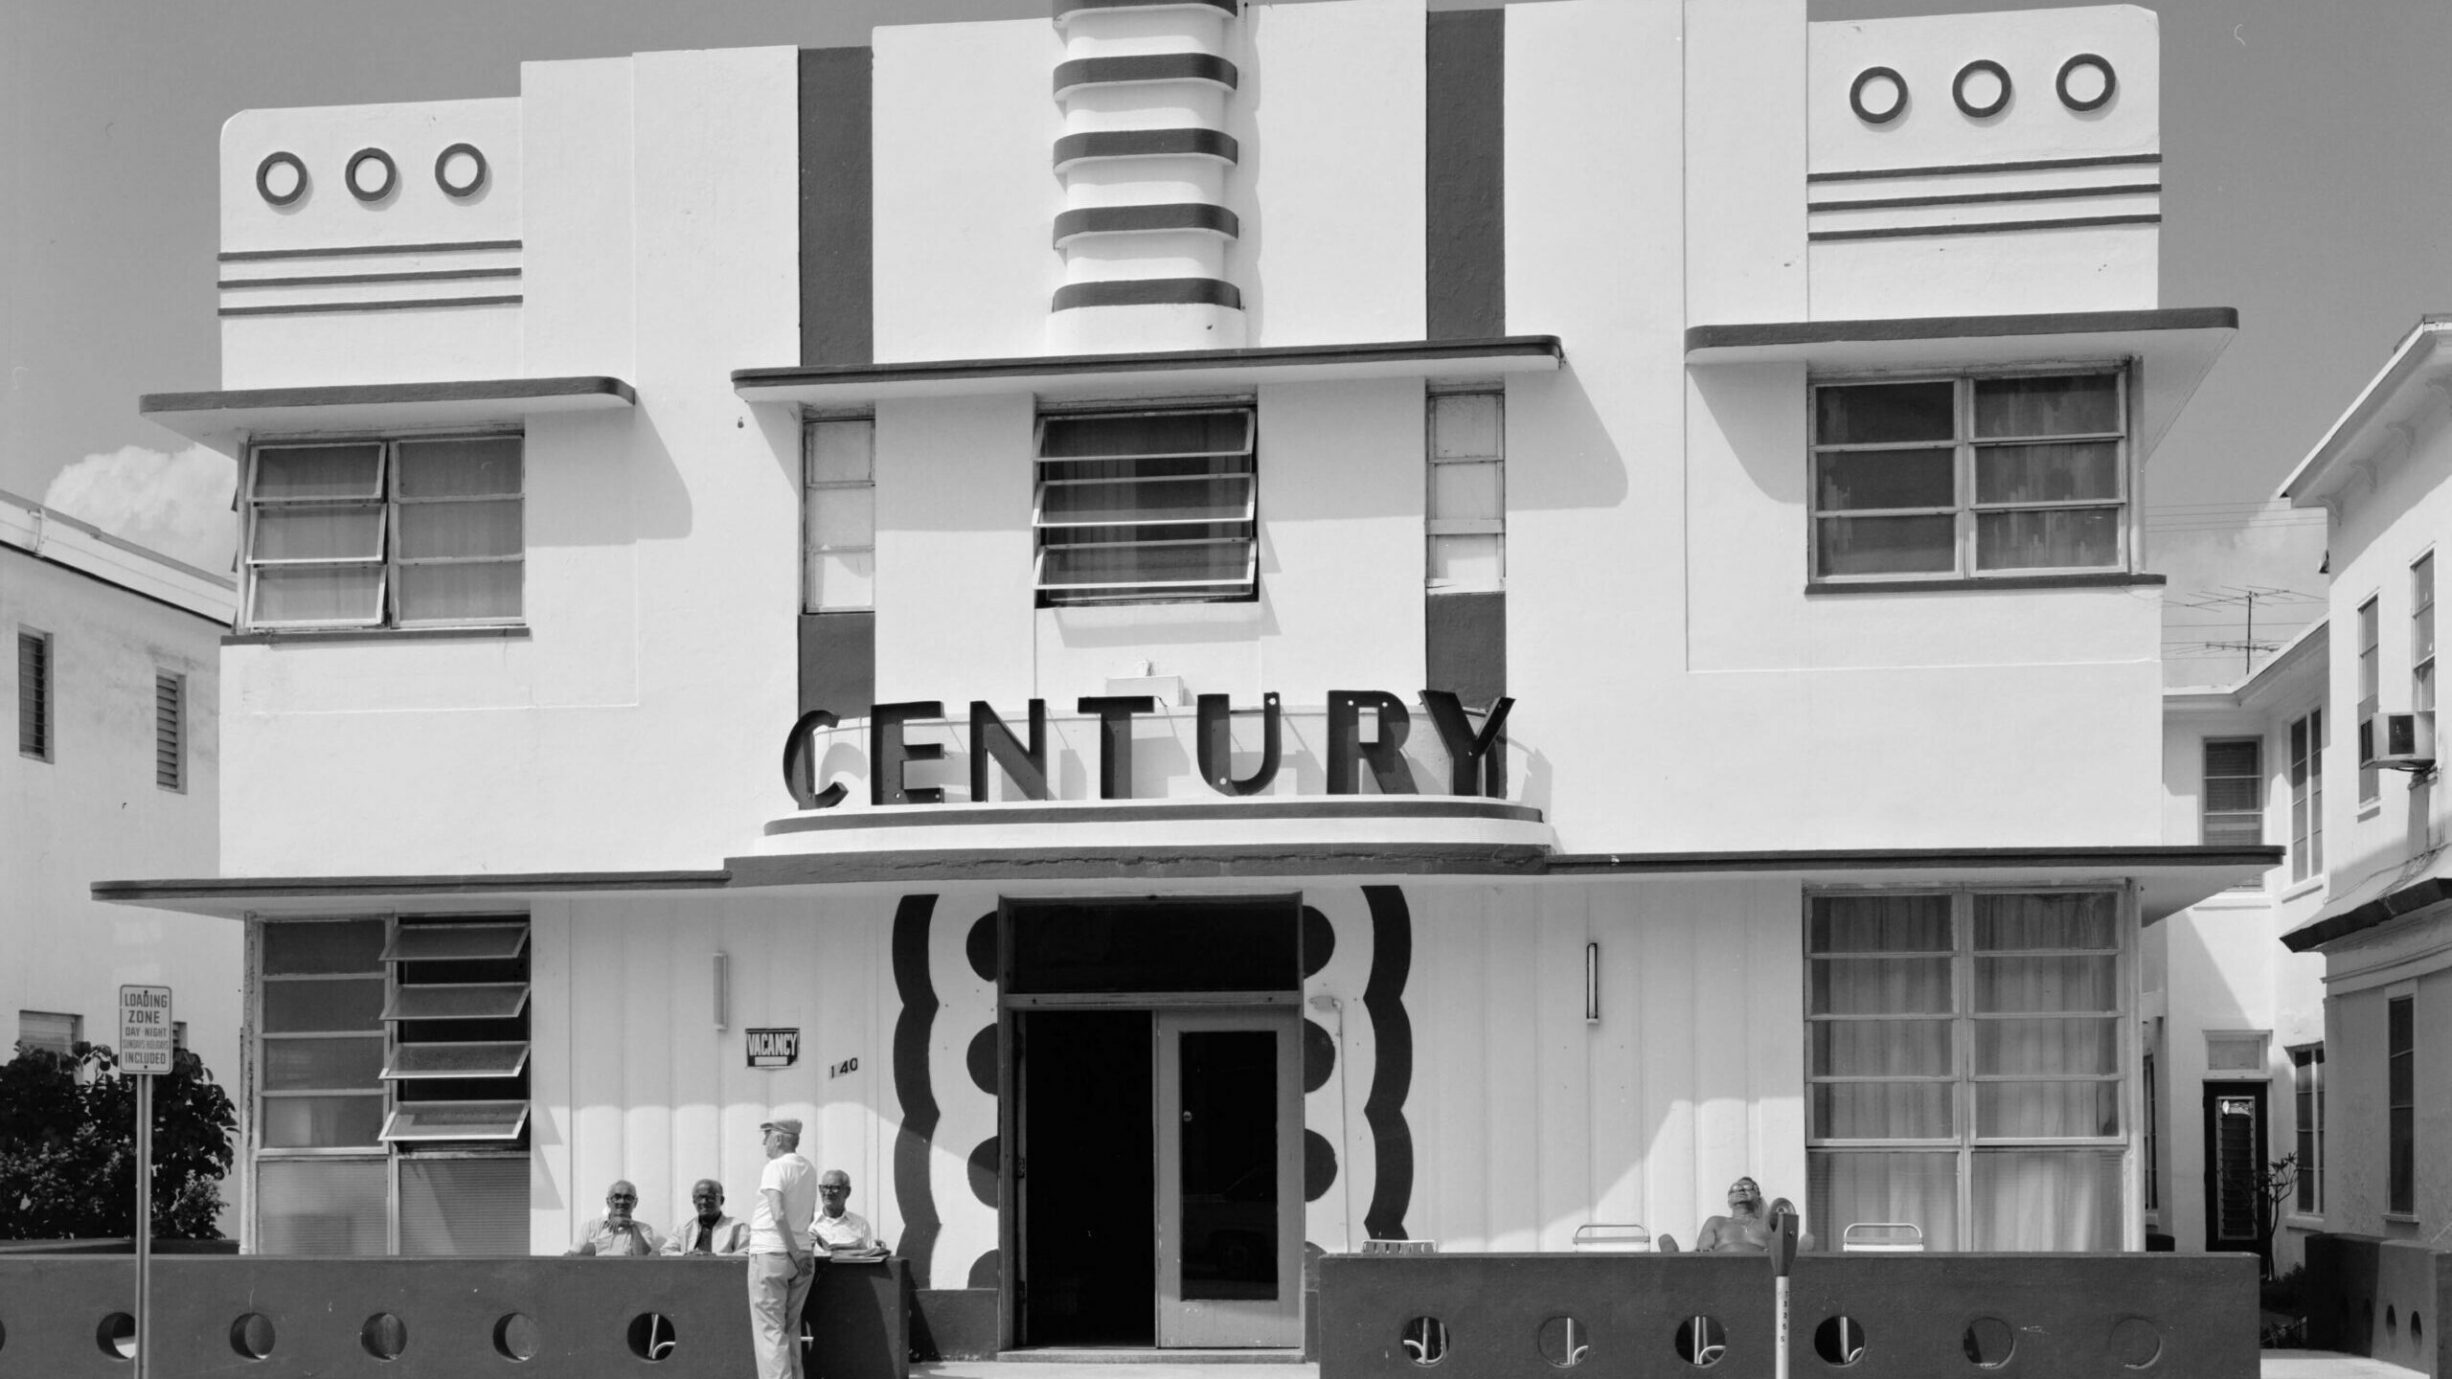 century art deco building